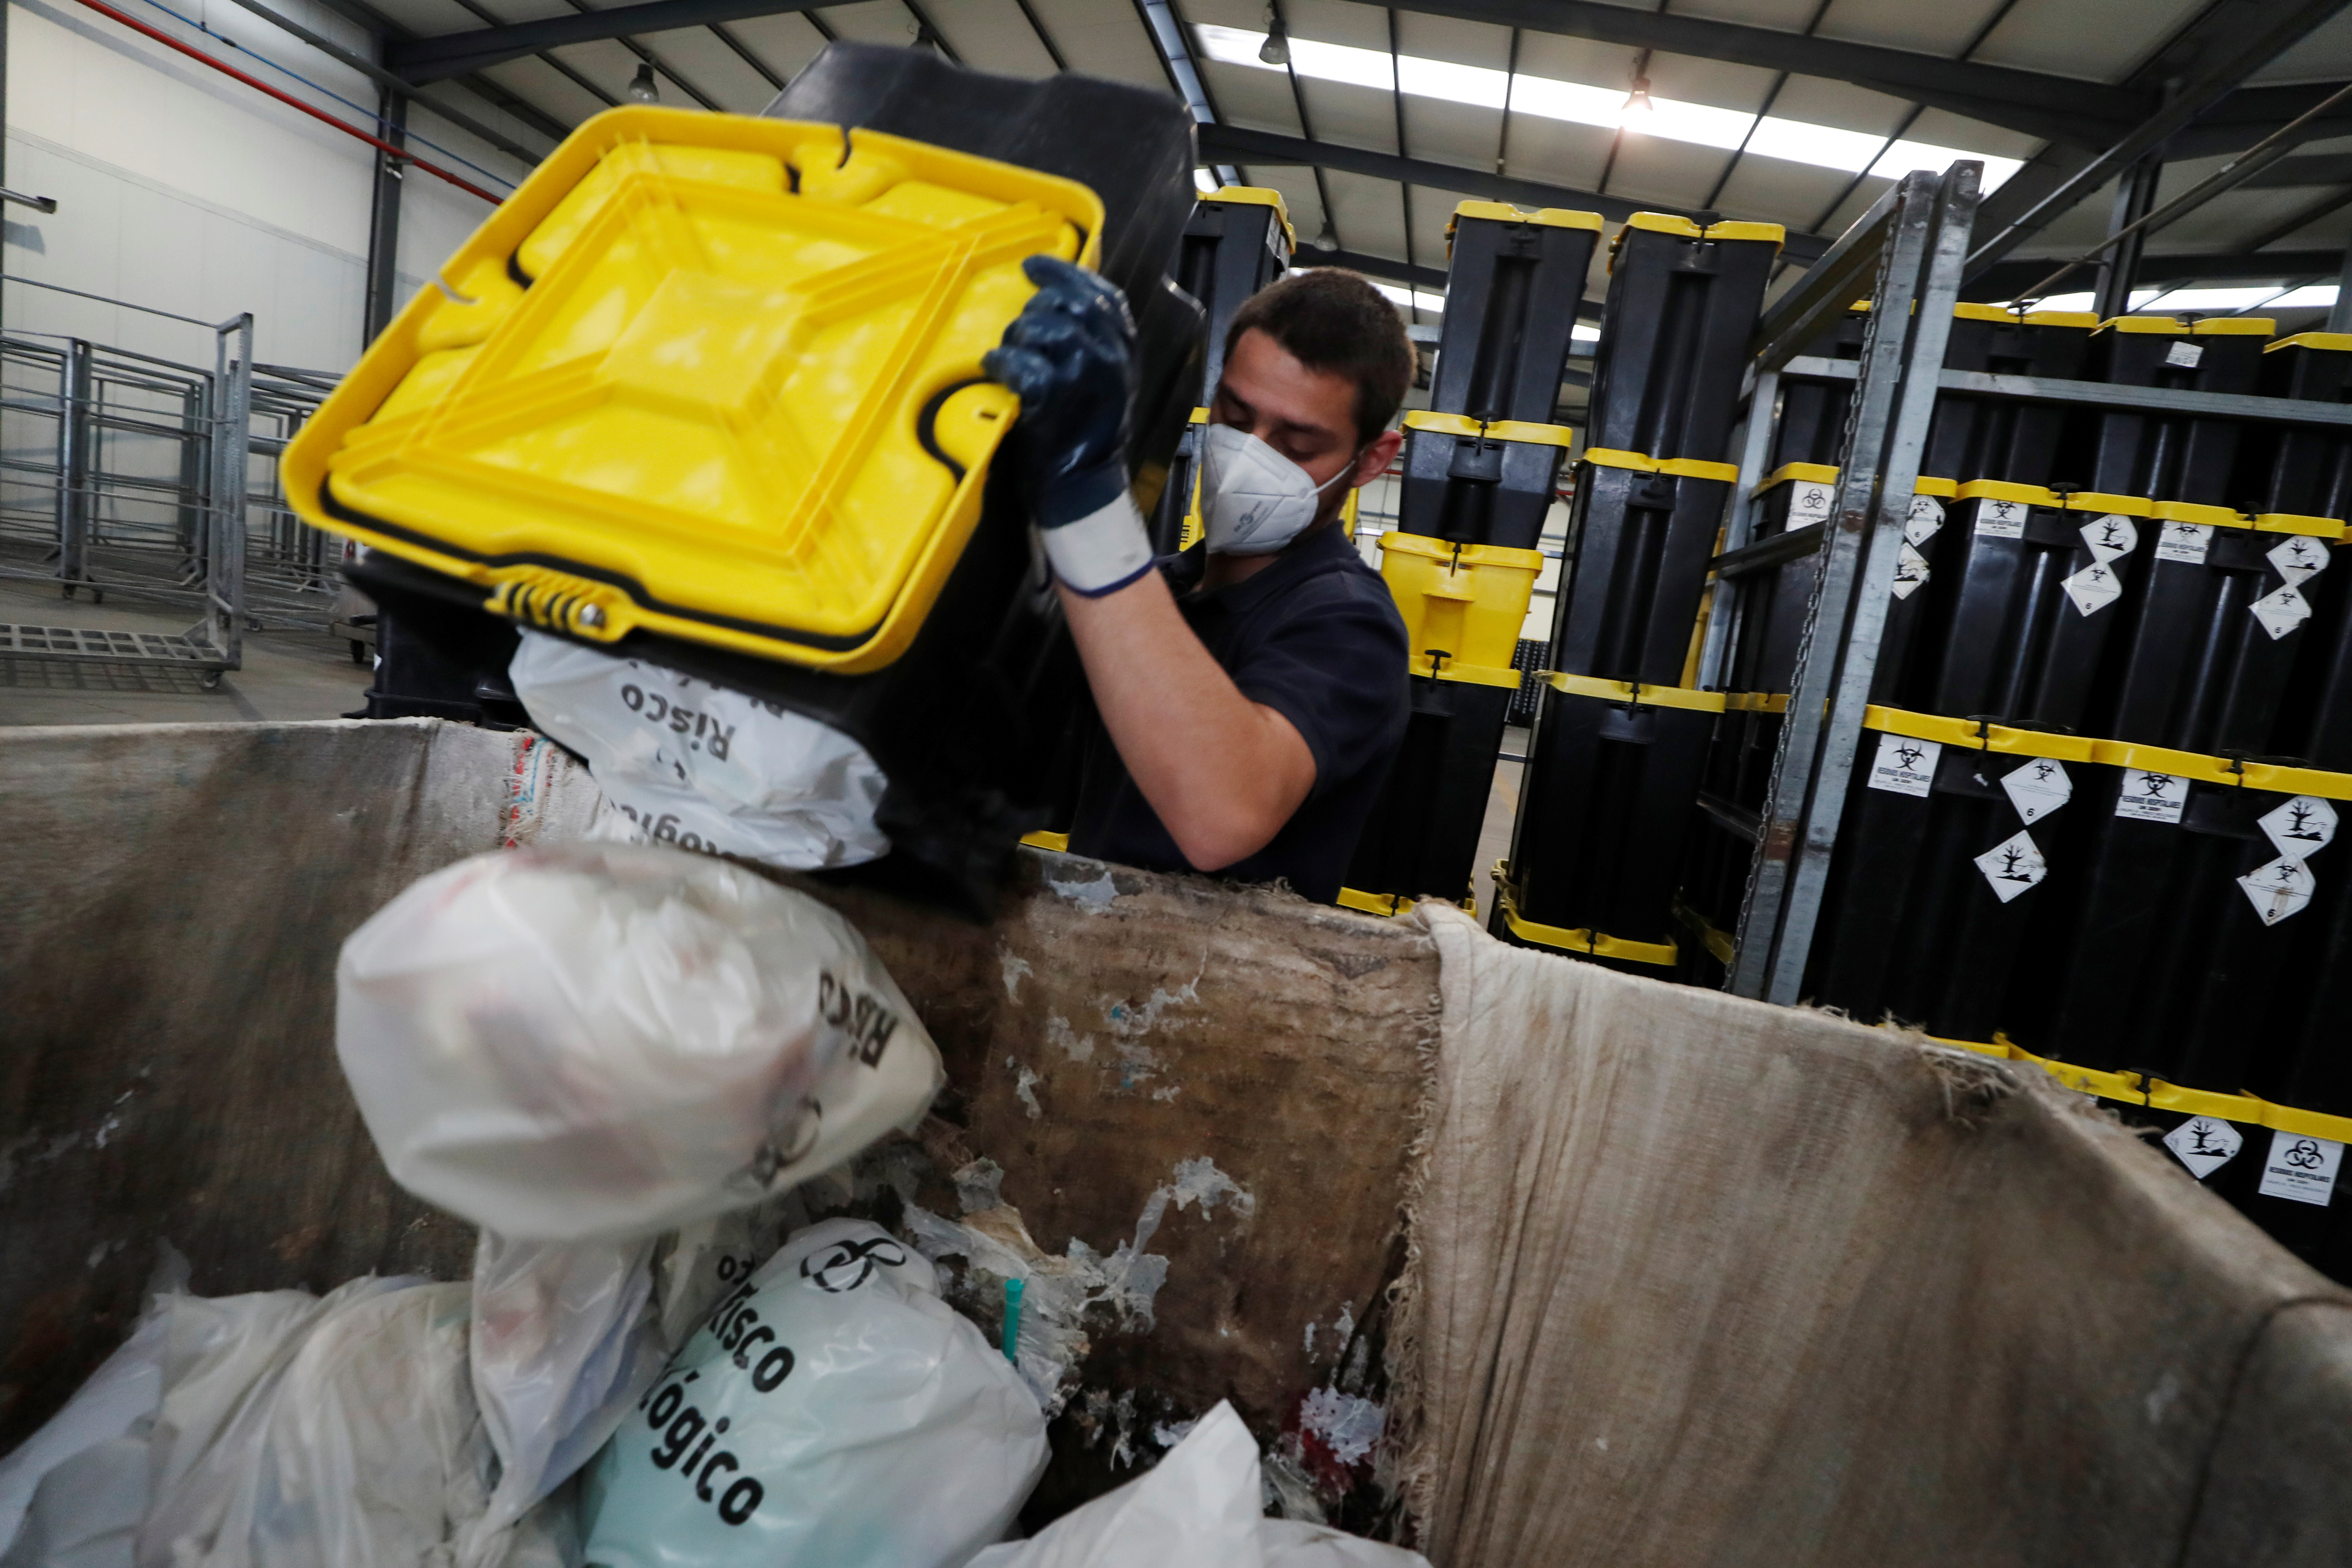 A worker removes used supplies from COVID-19 vaccines and protective equipment from a container in a waste treatment facility, amid the coronavirus disease (COVID-19) pandemic, in Chamusca, Santarem, Portugal, April 21, 2021.  REUTERS/Pedro Nunes